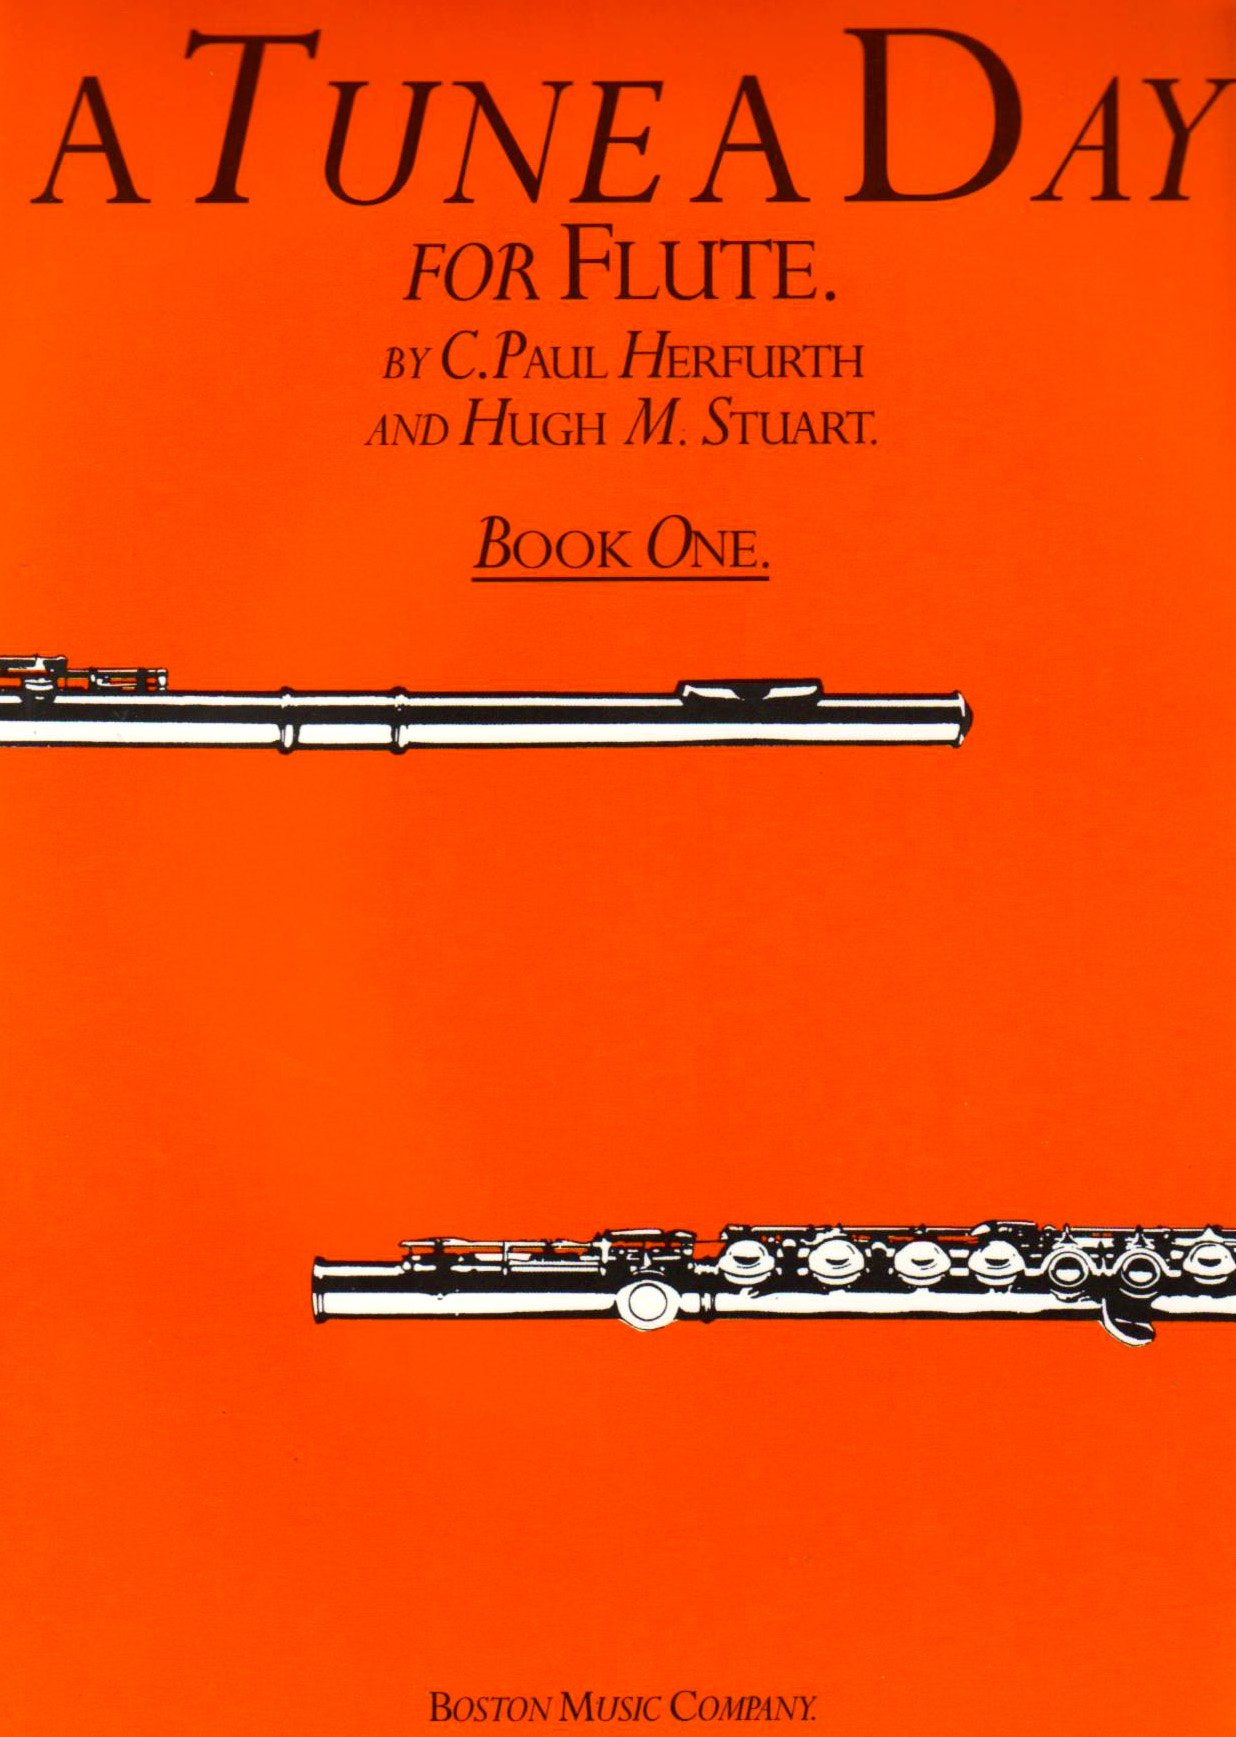 A Tune A Day For Flute: Book One Paperback – Jan 1 2000 C. Paul Herfurth Hugh Stuart Boston Music 0711915660